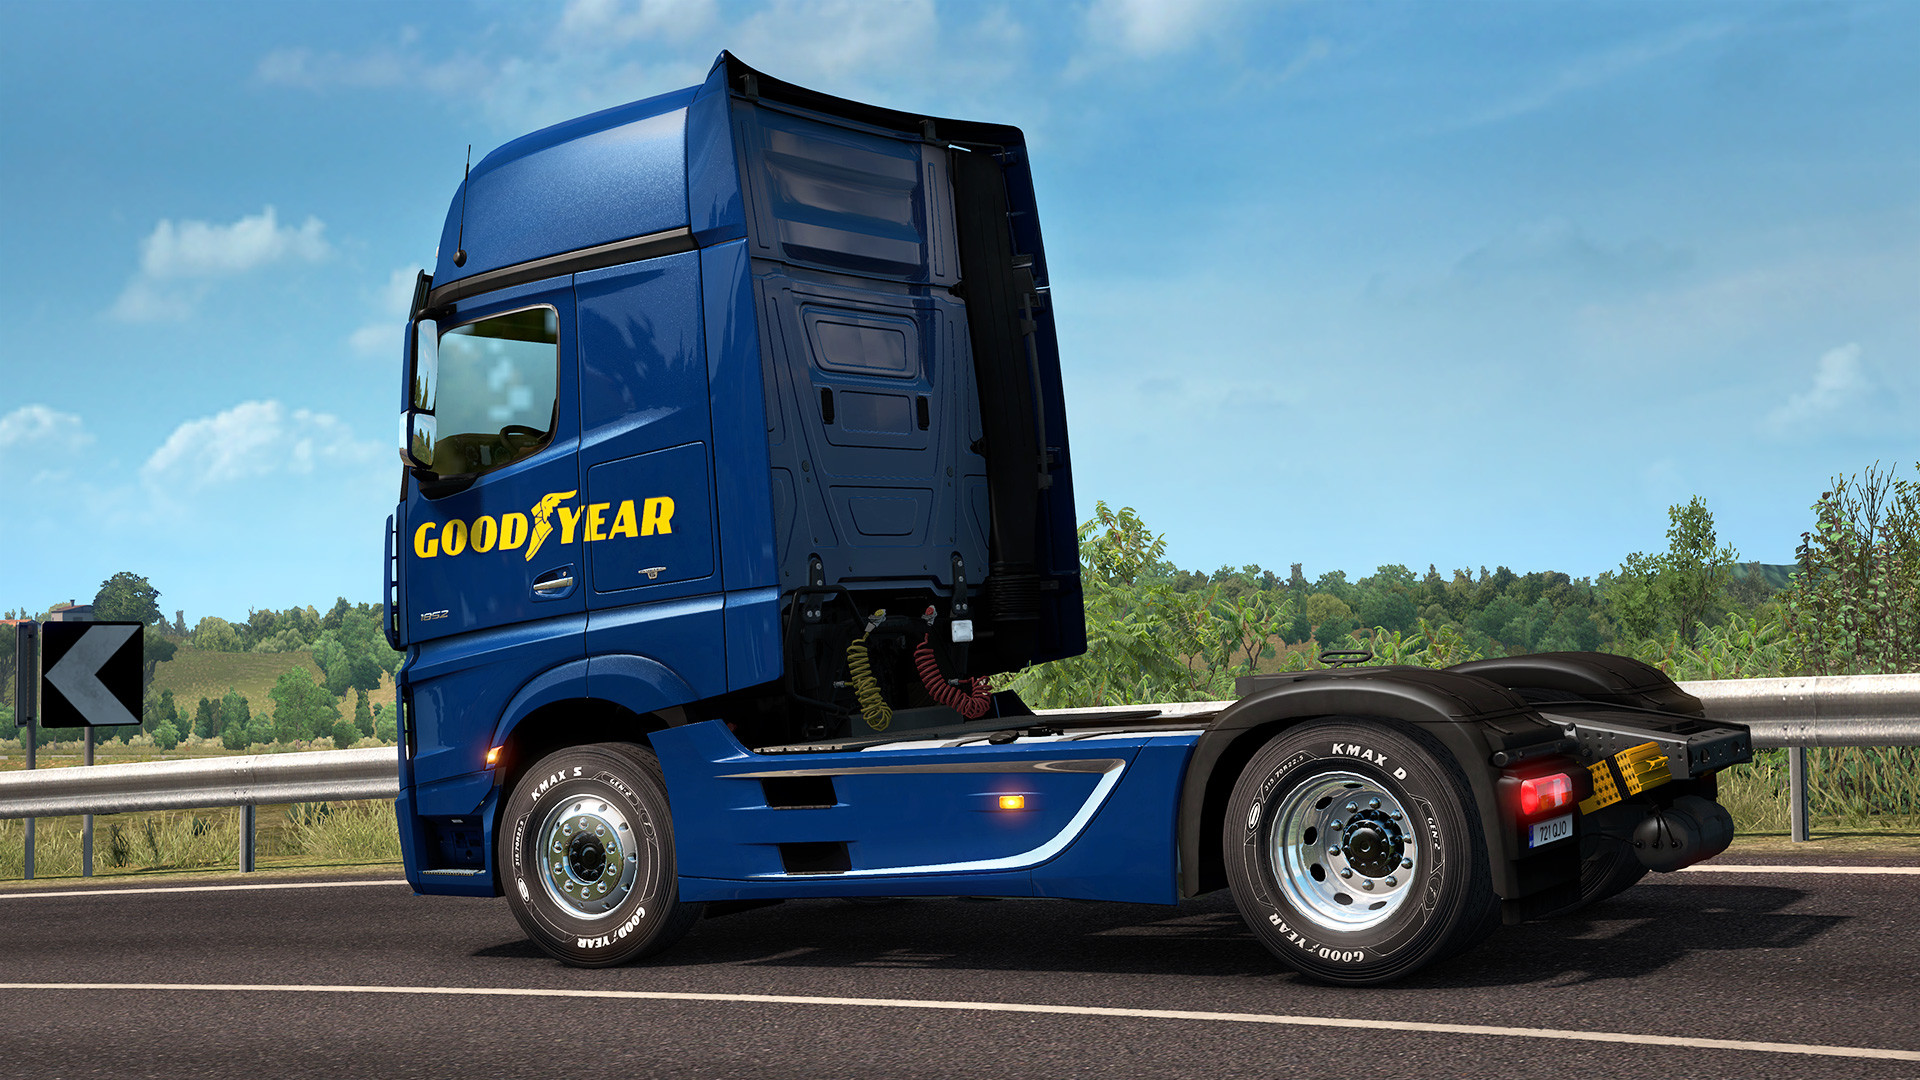 Euro truck simulator 2 - goodyear tyres pack download mediafire